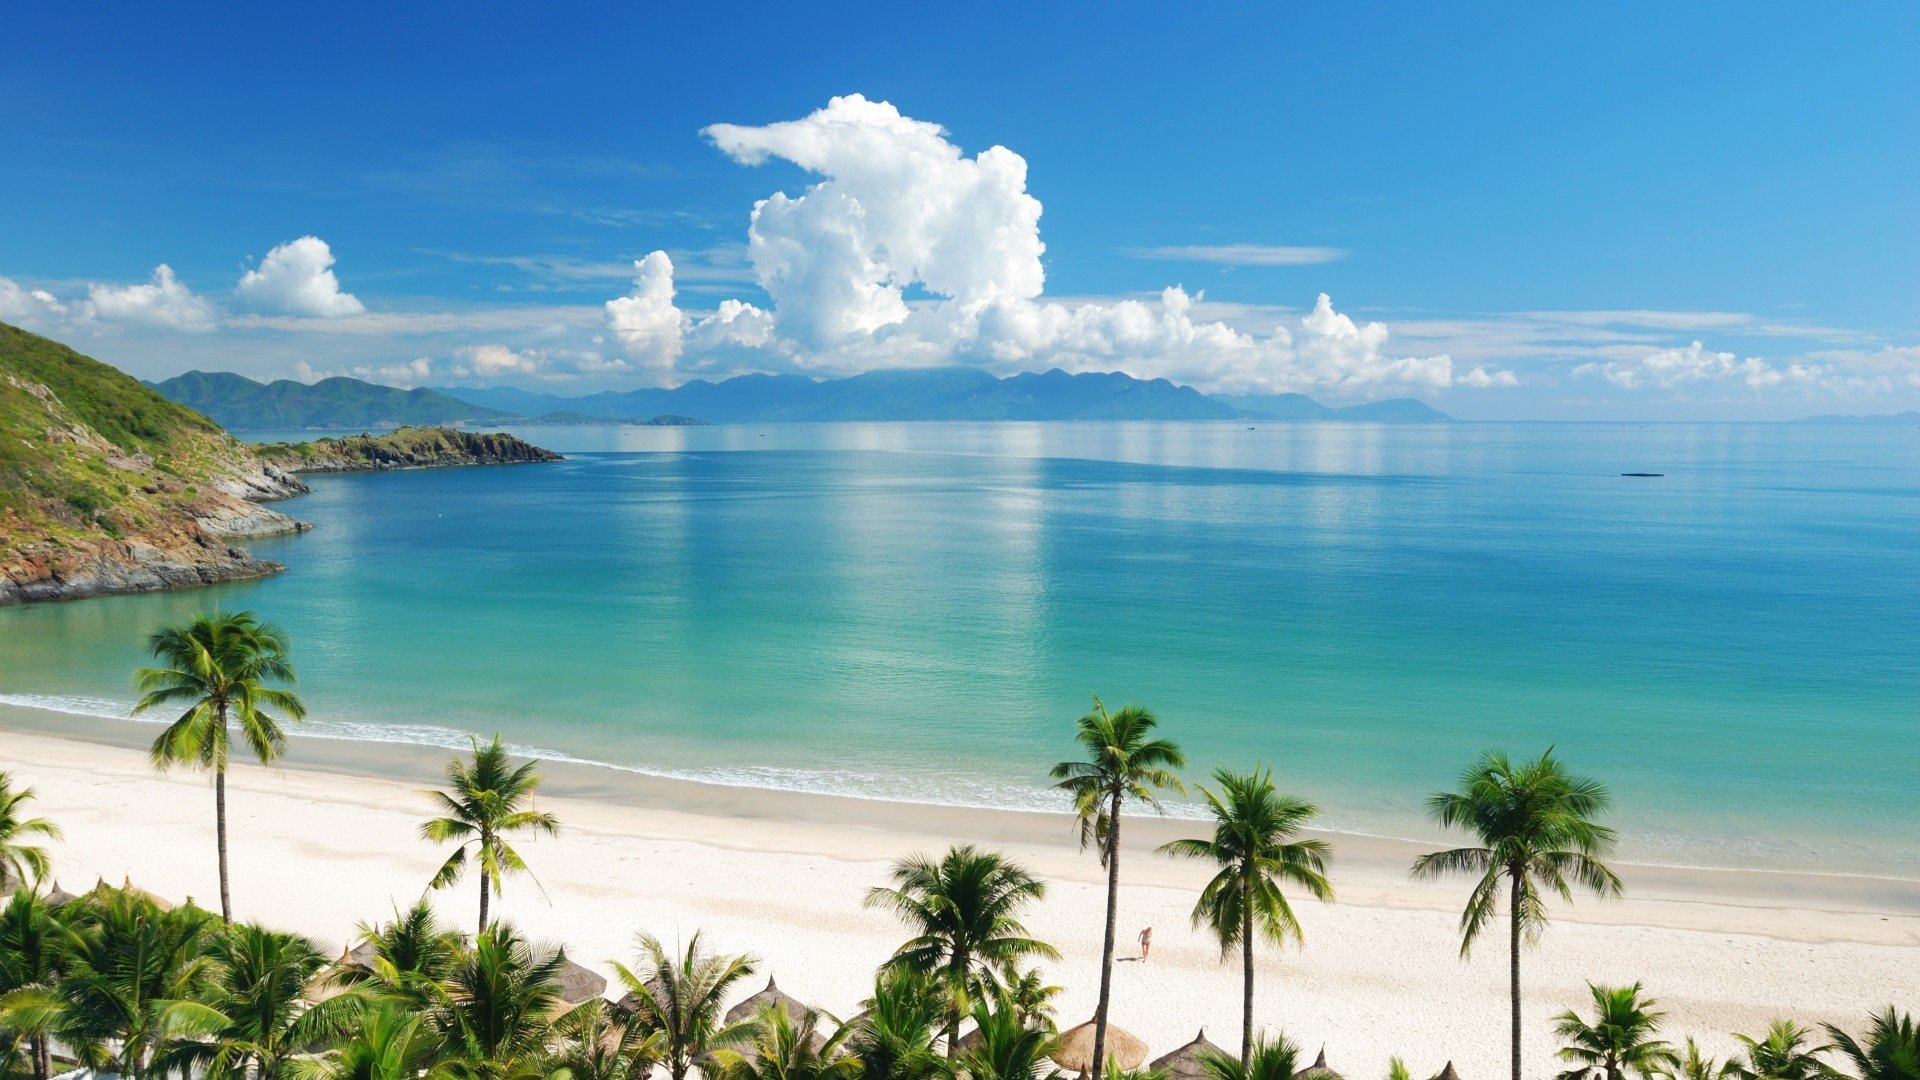 … Background Full HD 1080p. Wallpaper beach, tropics, sea,  sand, summer